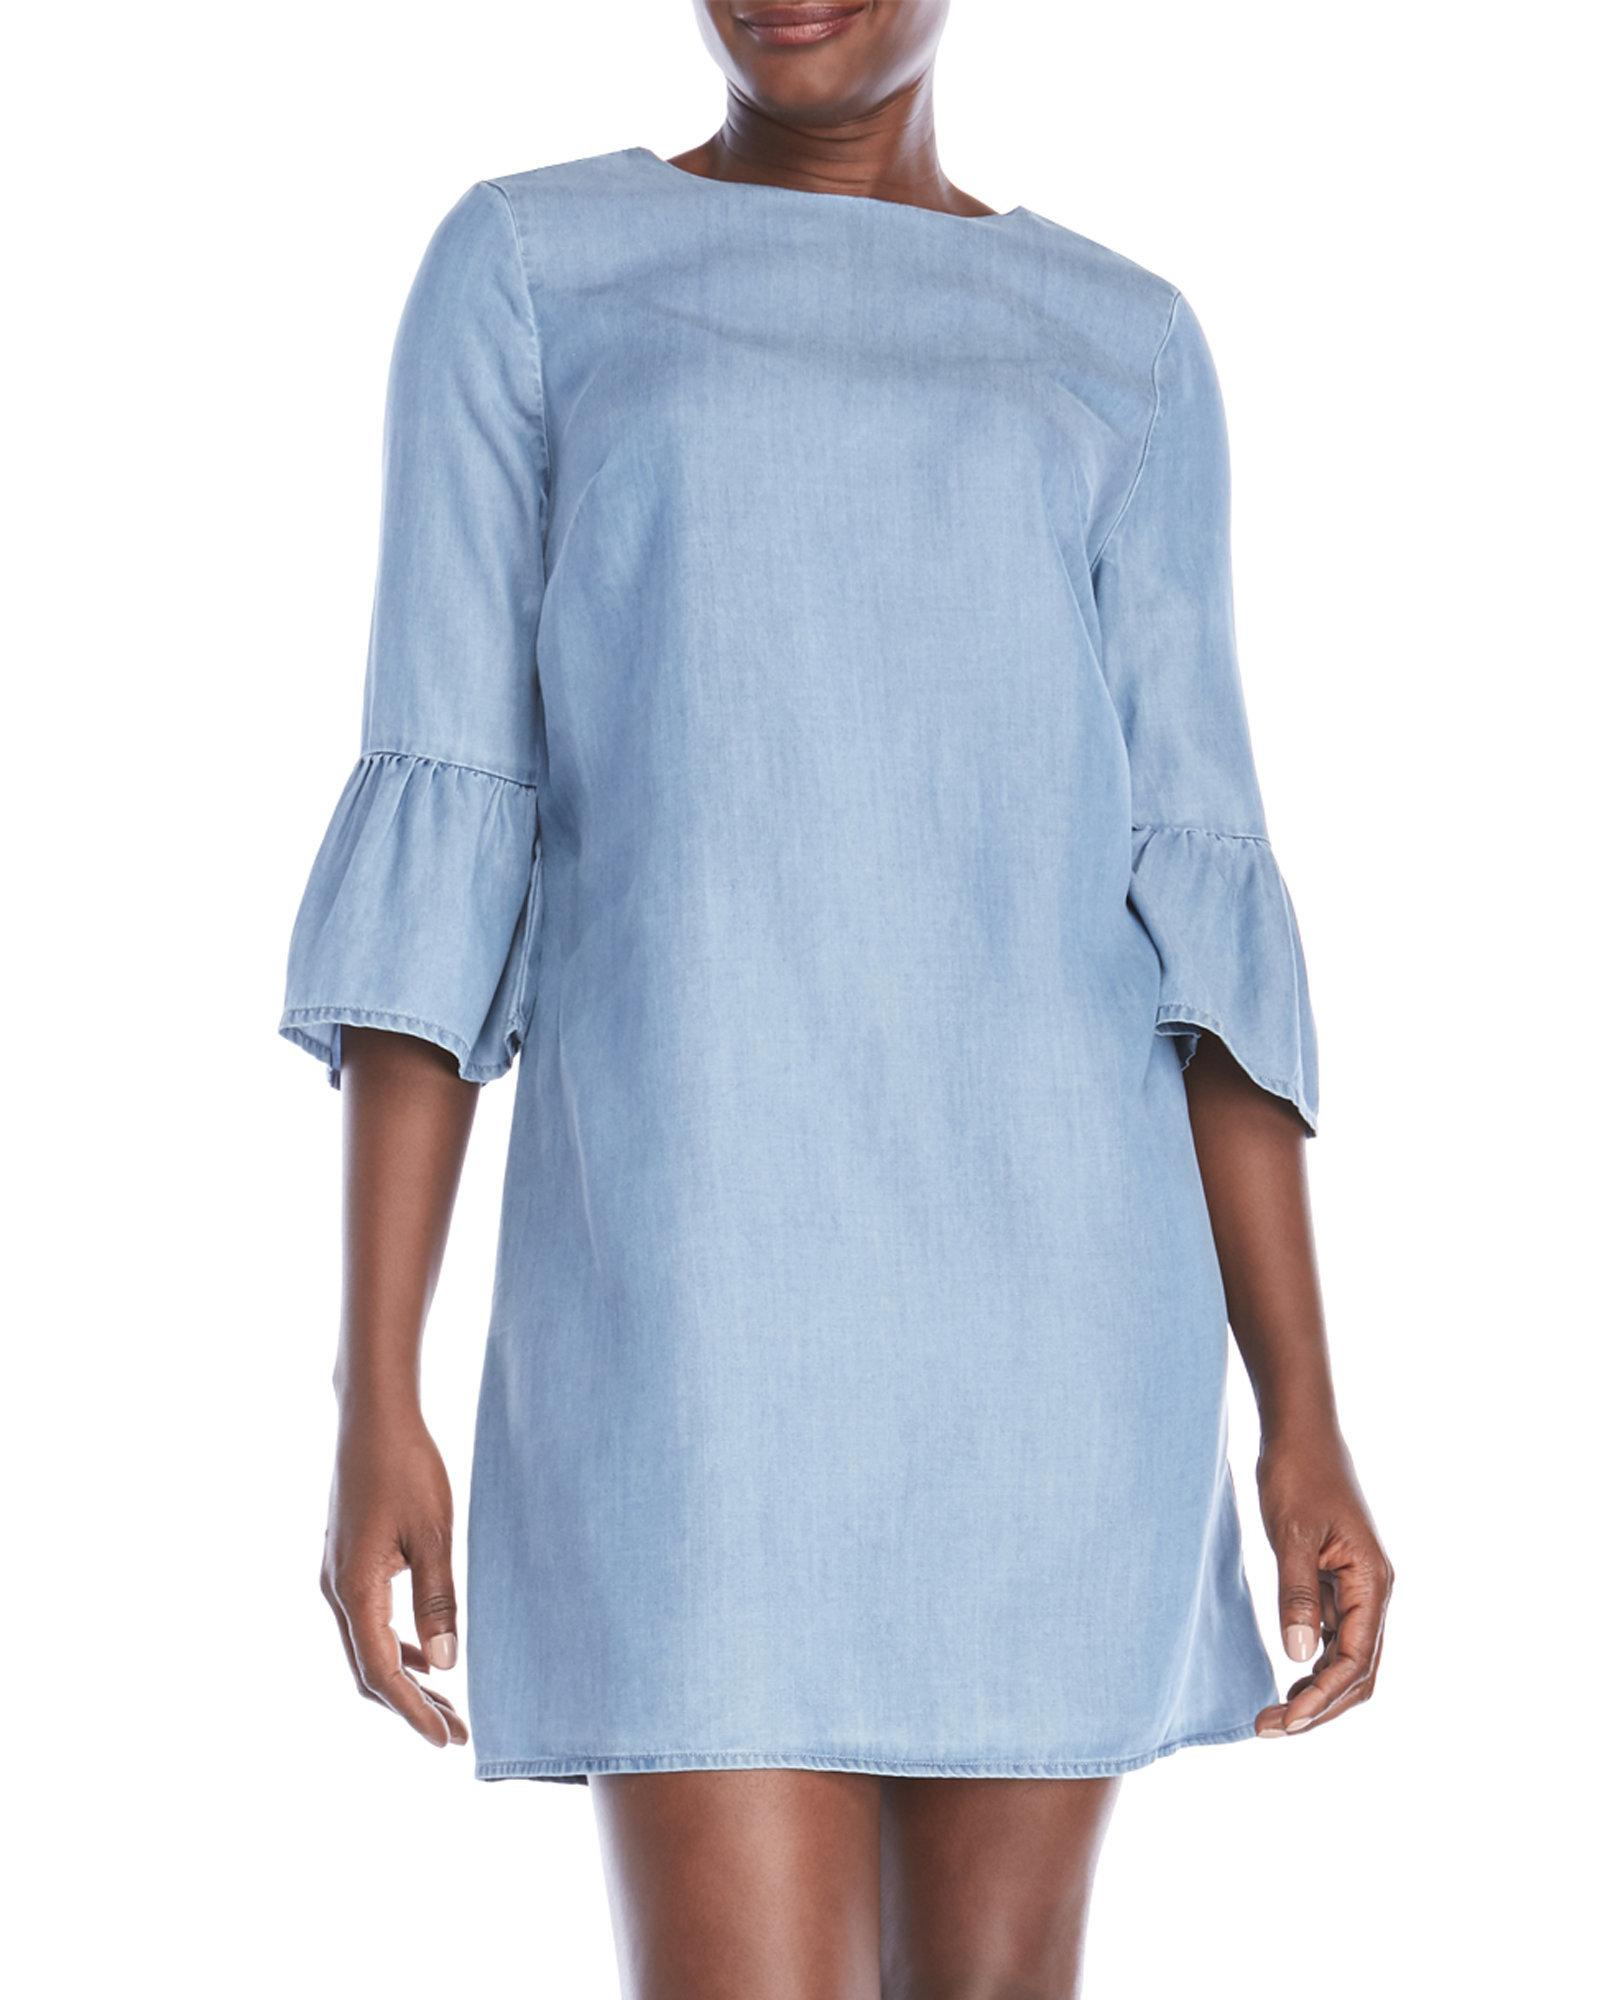 5895ebd486 Lyst - Beach Lunch Lounge Chambray Shift Dress in Blue